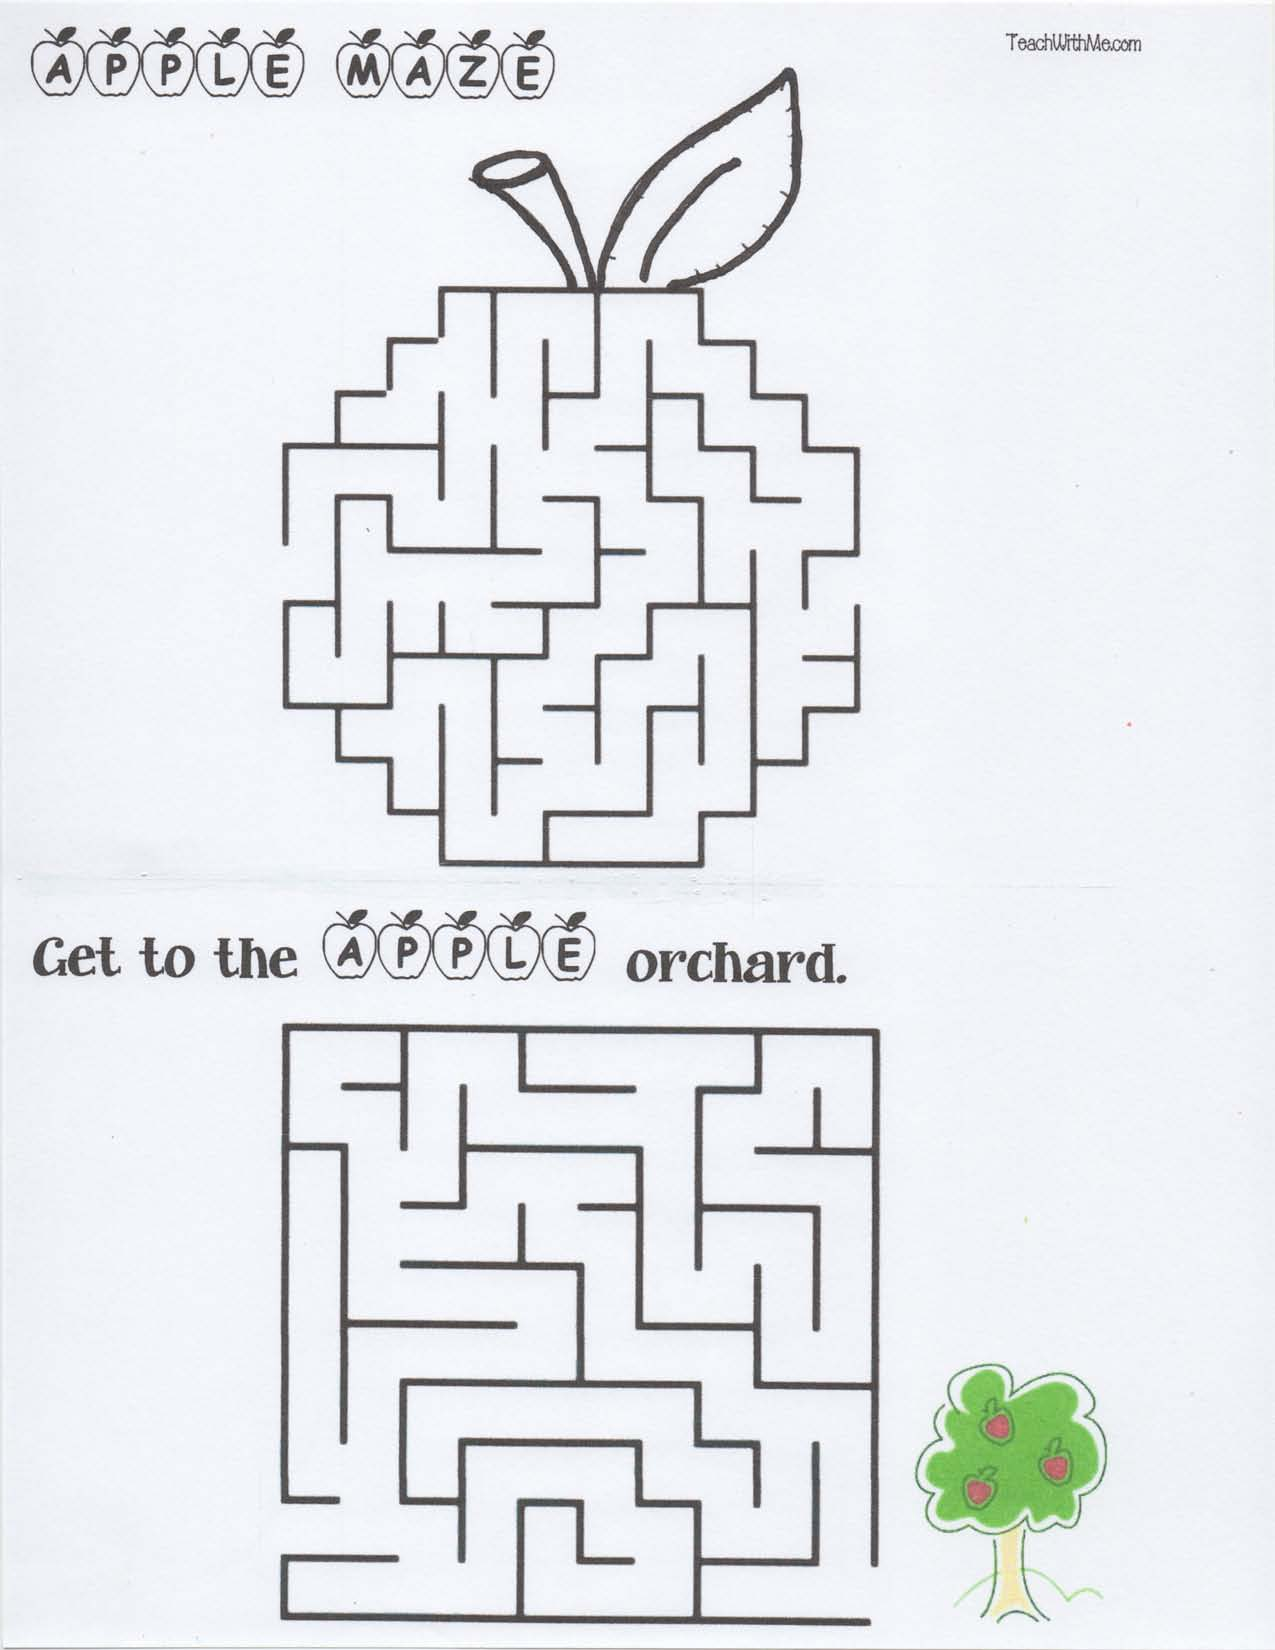 apple mazes, apple activities, apple lessons, apple word find, labeled apple, parts of an apple activities, labeling an apple, label an apple printable,apple maze,